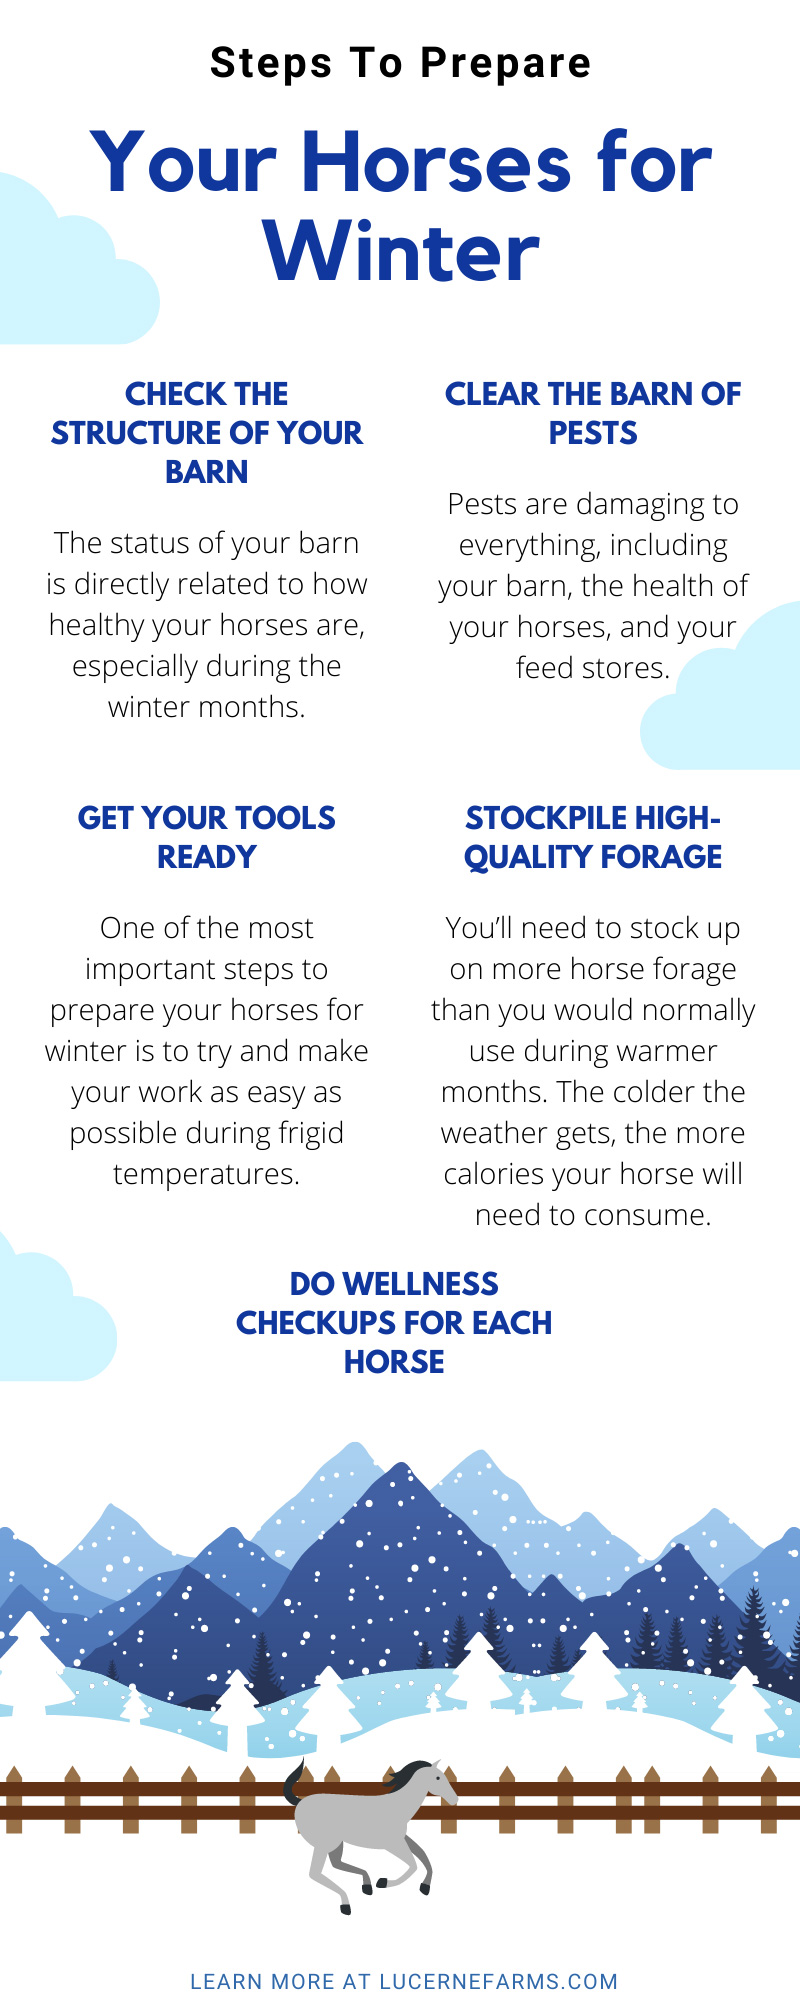 Steps To Prepare Your Horses for Winter